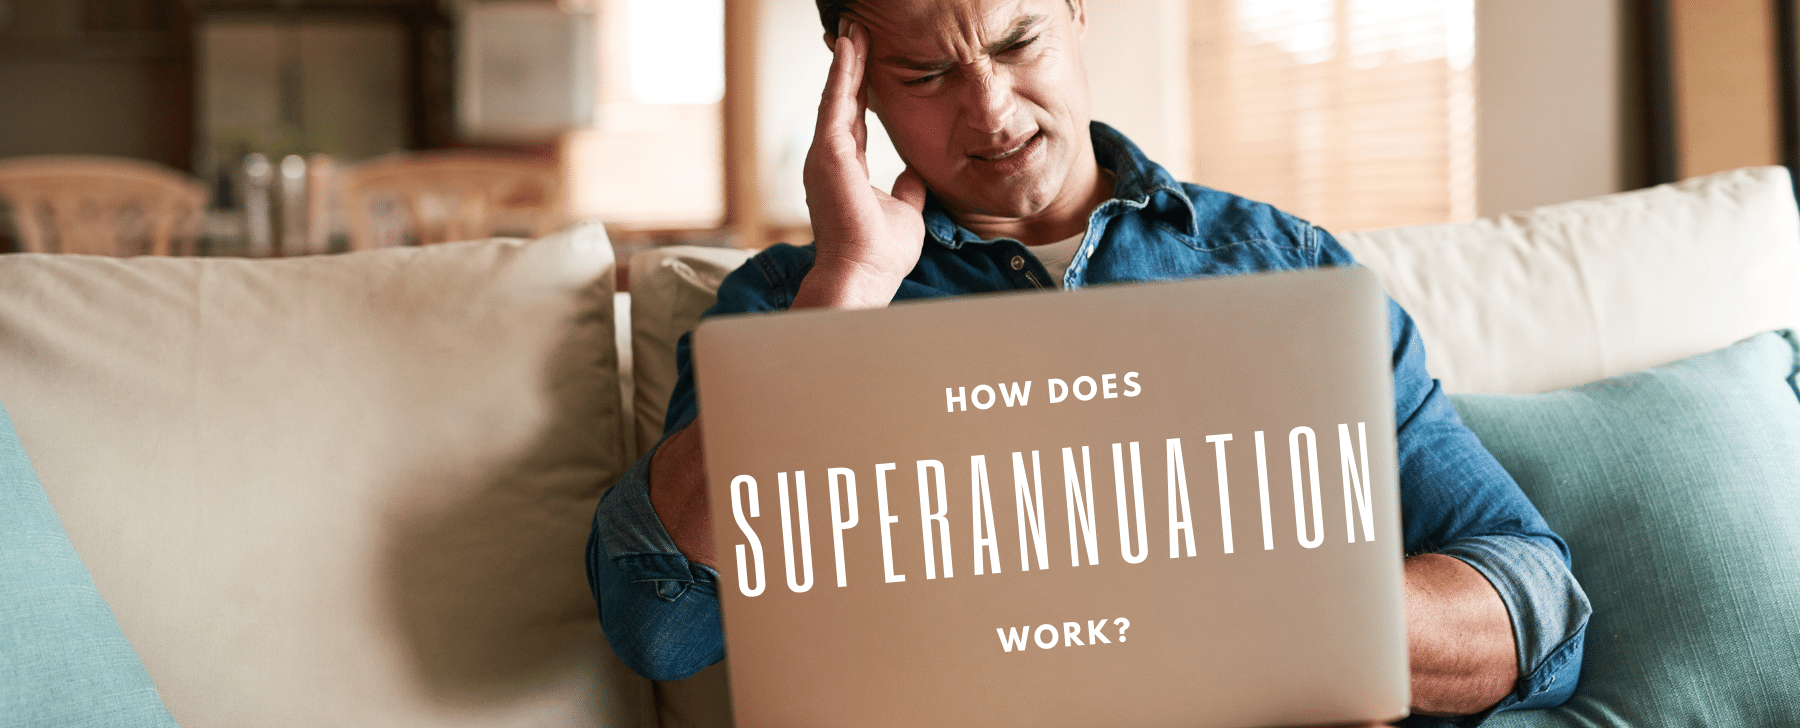 How does superannuation work